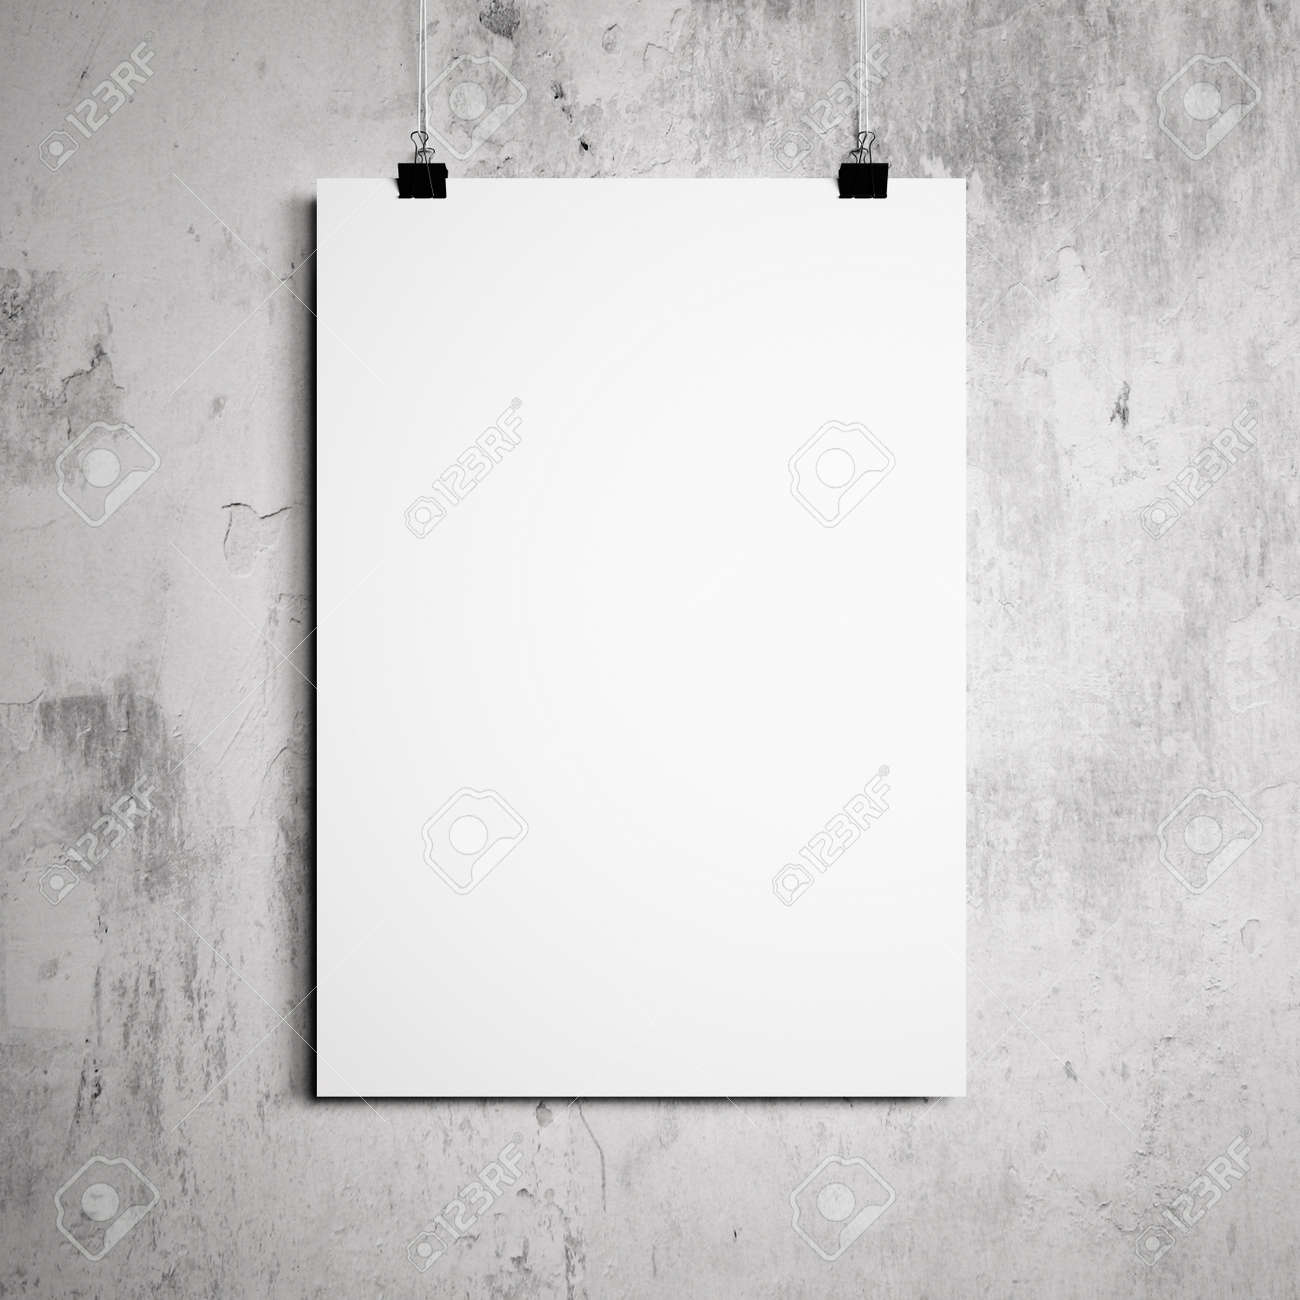 blank poster hanging on a white background painted walls stock photo